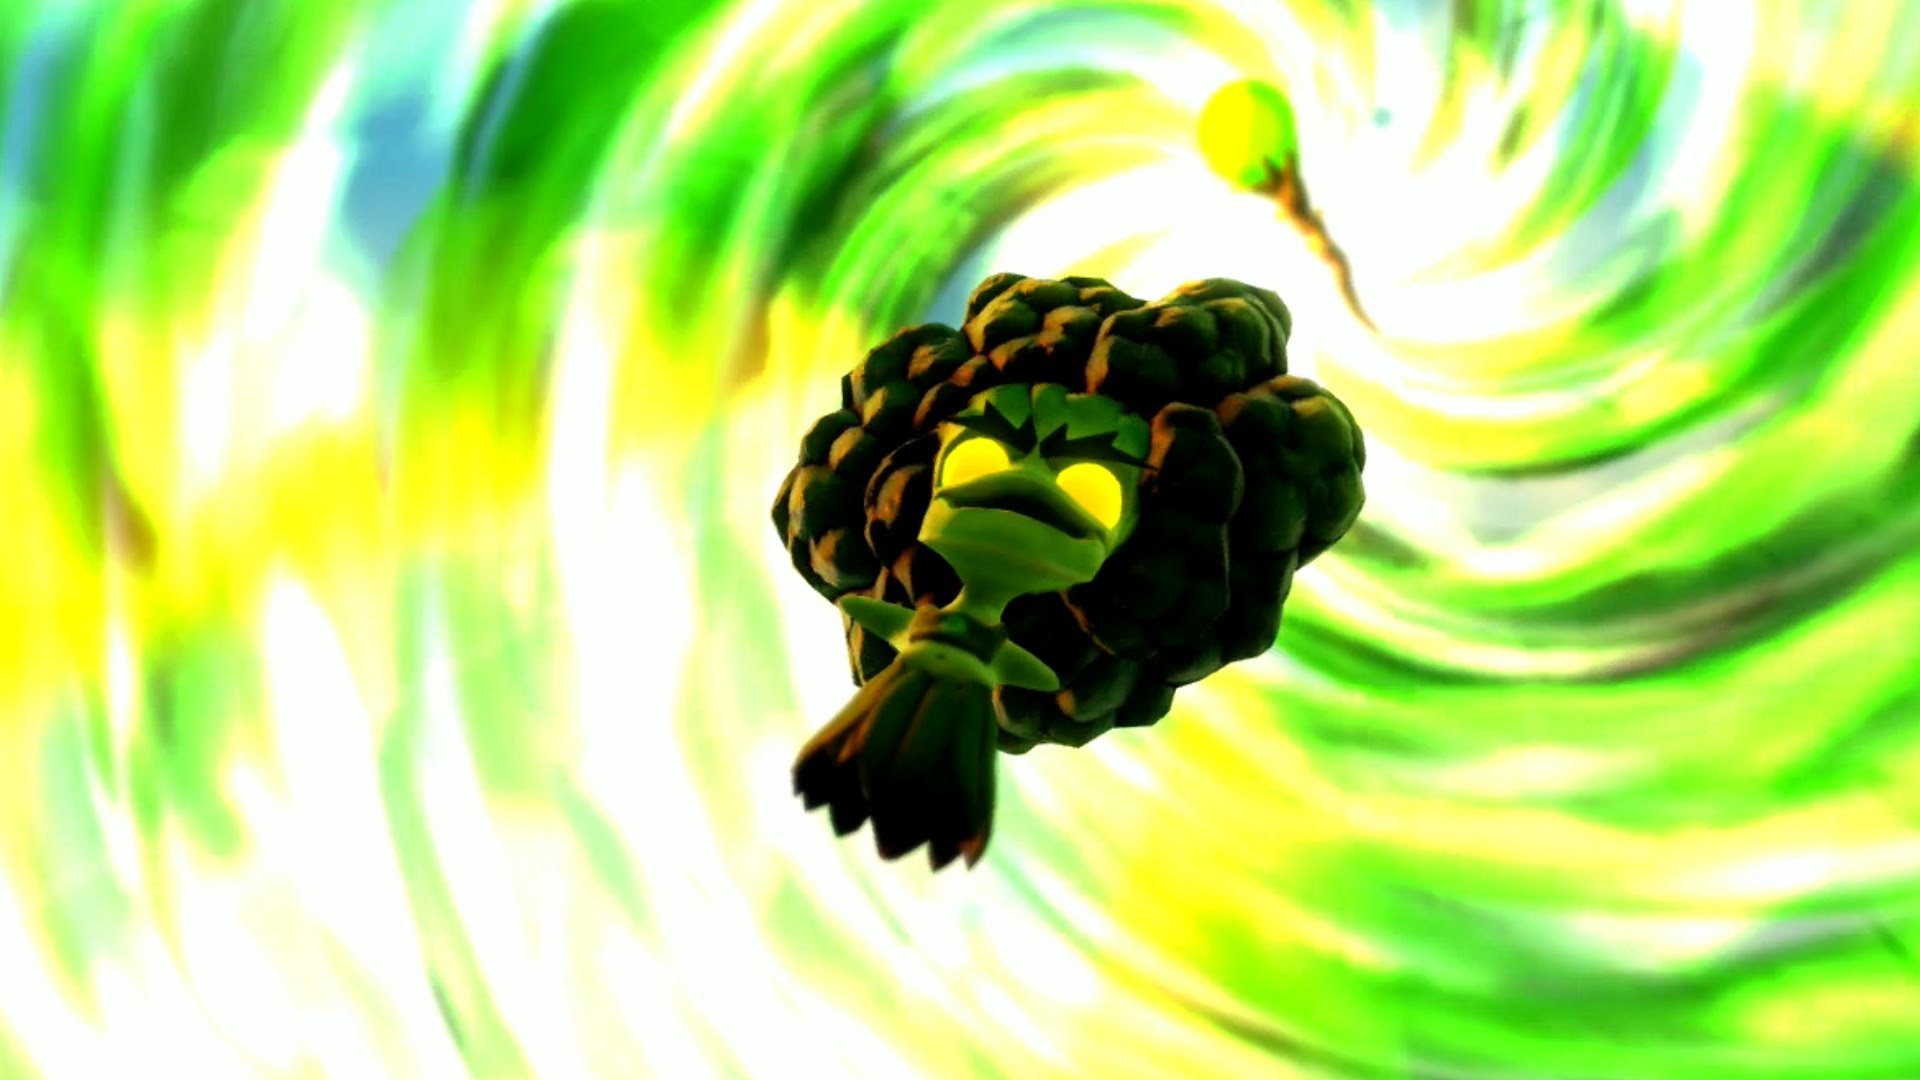 Skylanders Trap Team Broccoli Guy